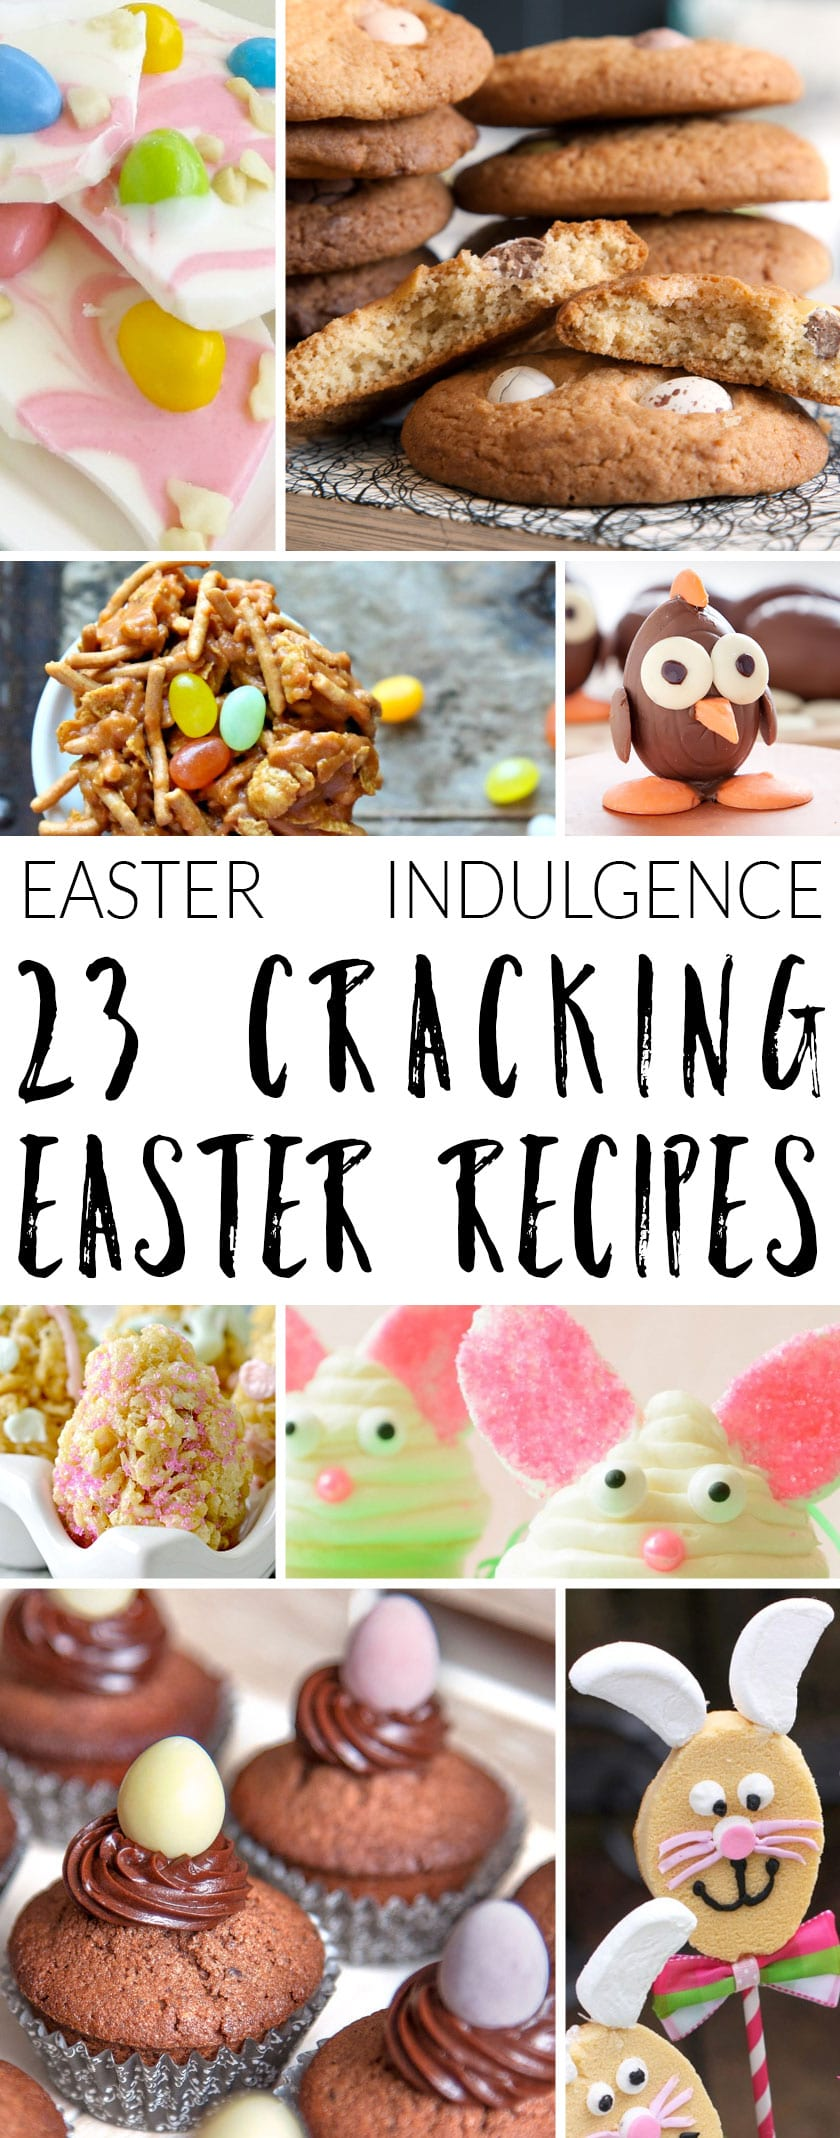 easter-indulgence-ideas